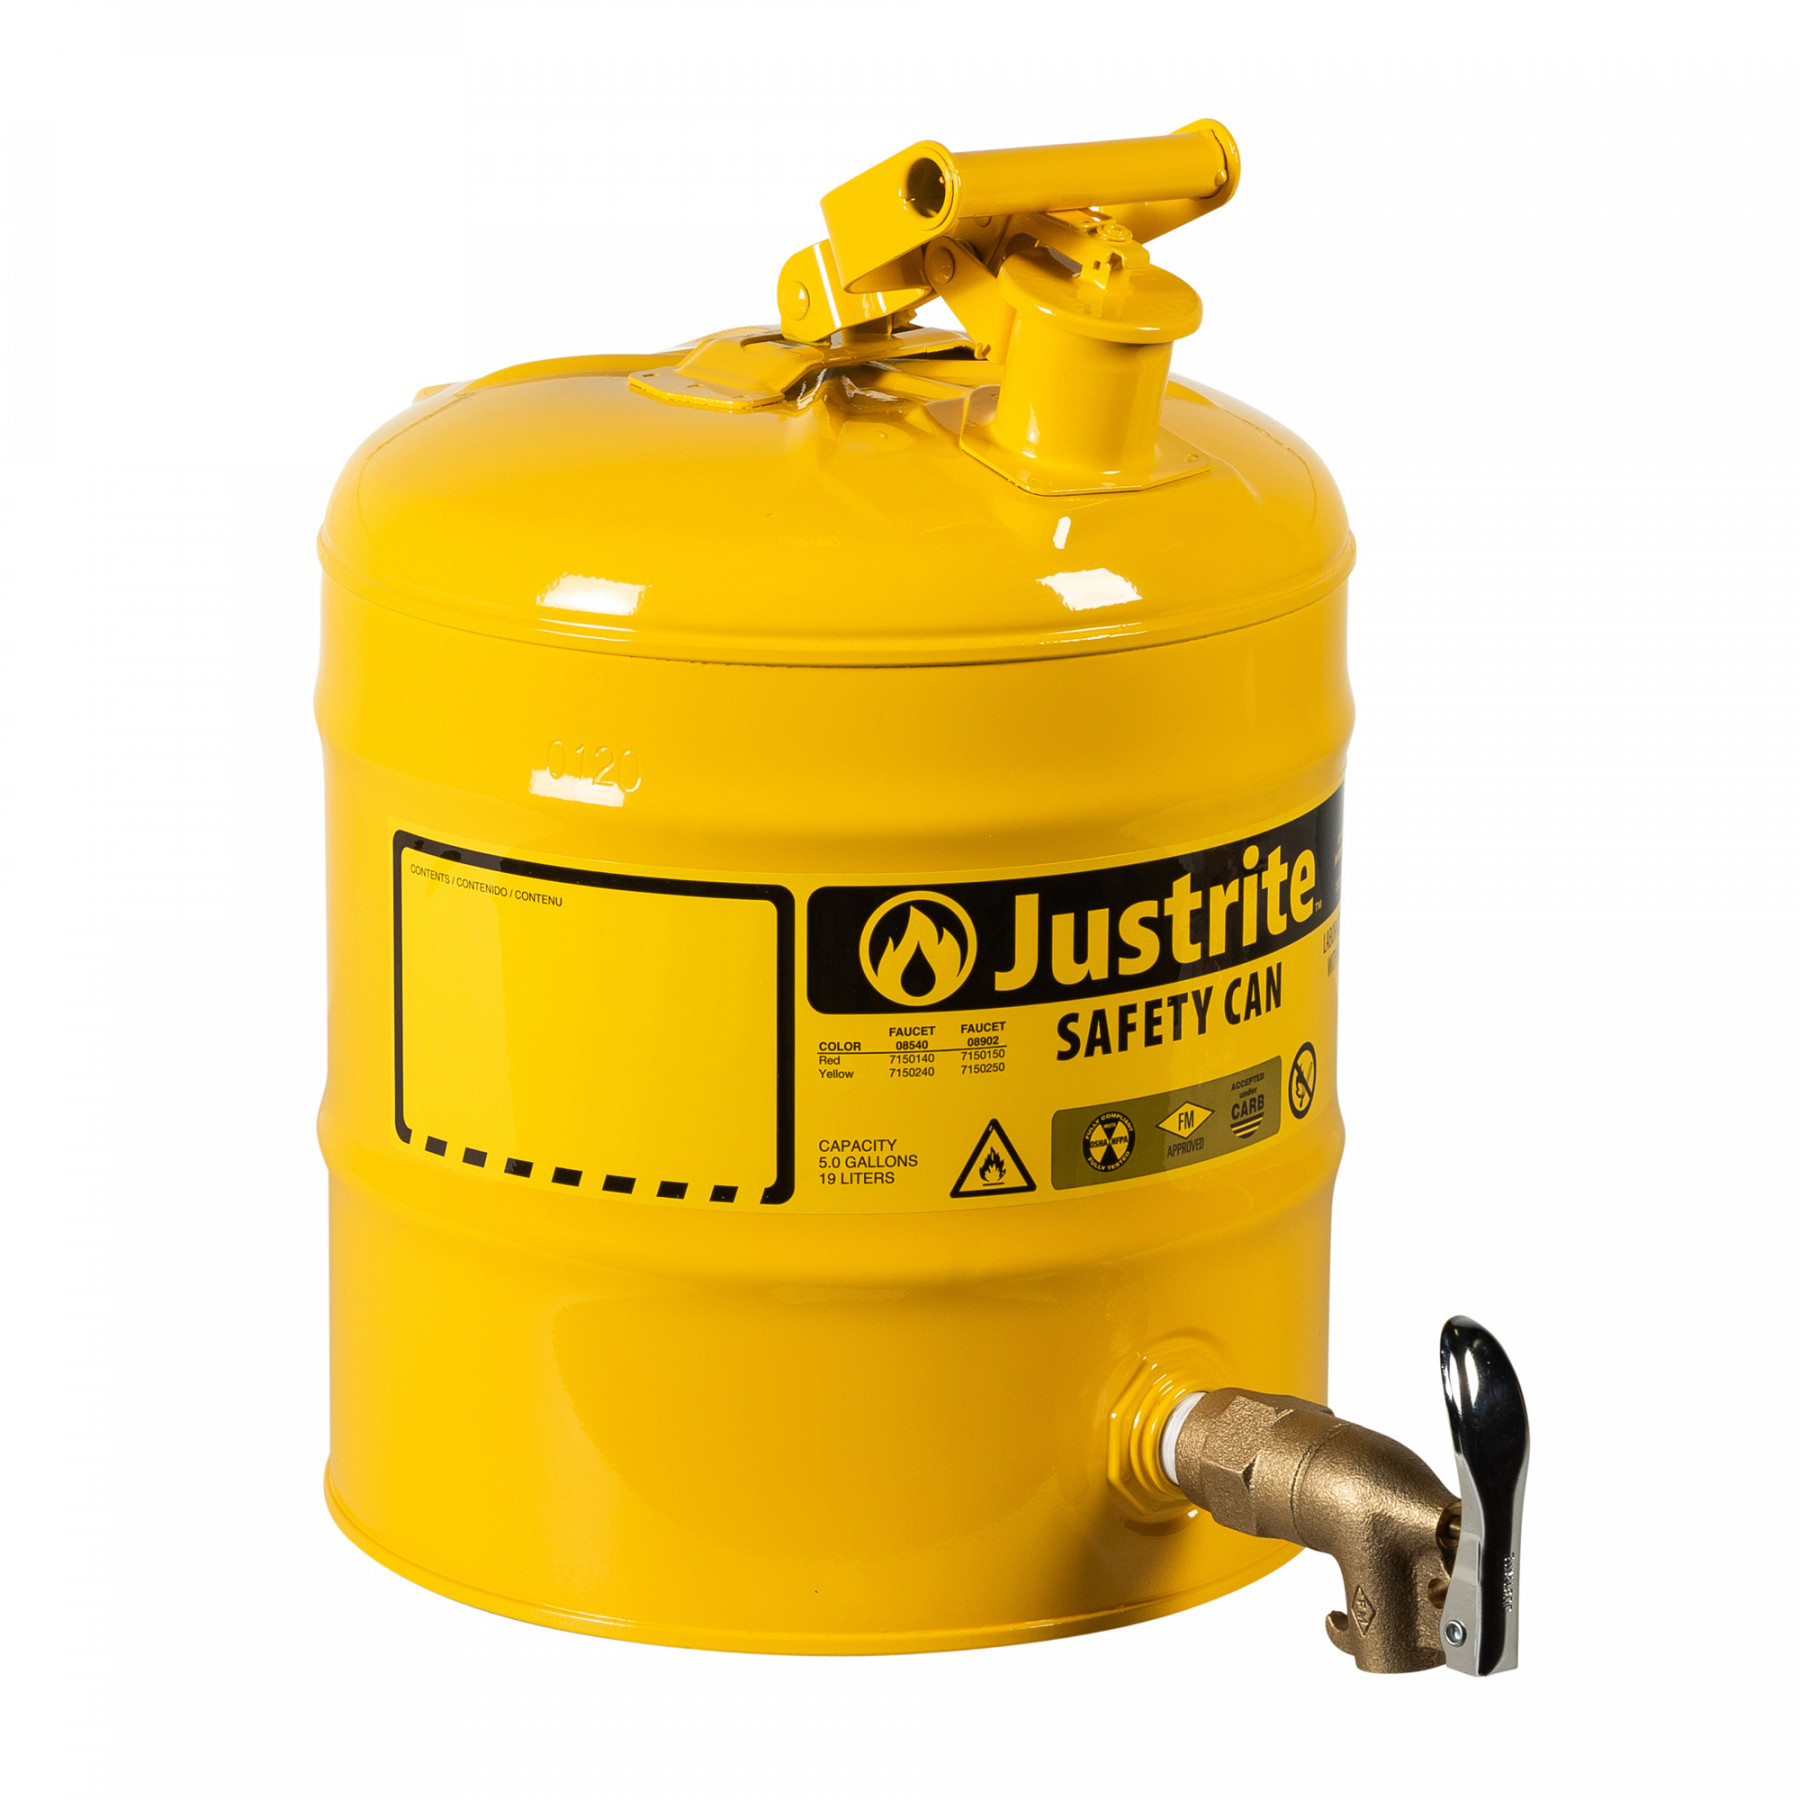 7150250_type-1-safety-can-5-gallon-yellow_justrite_1